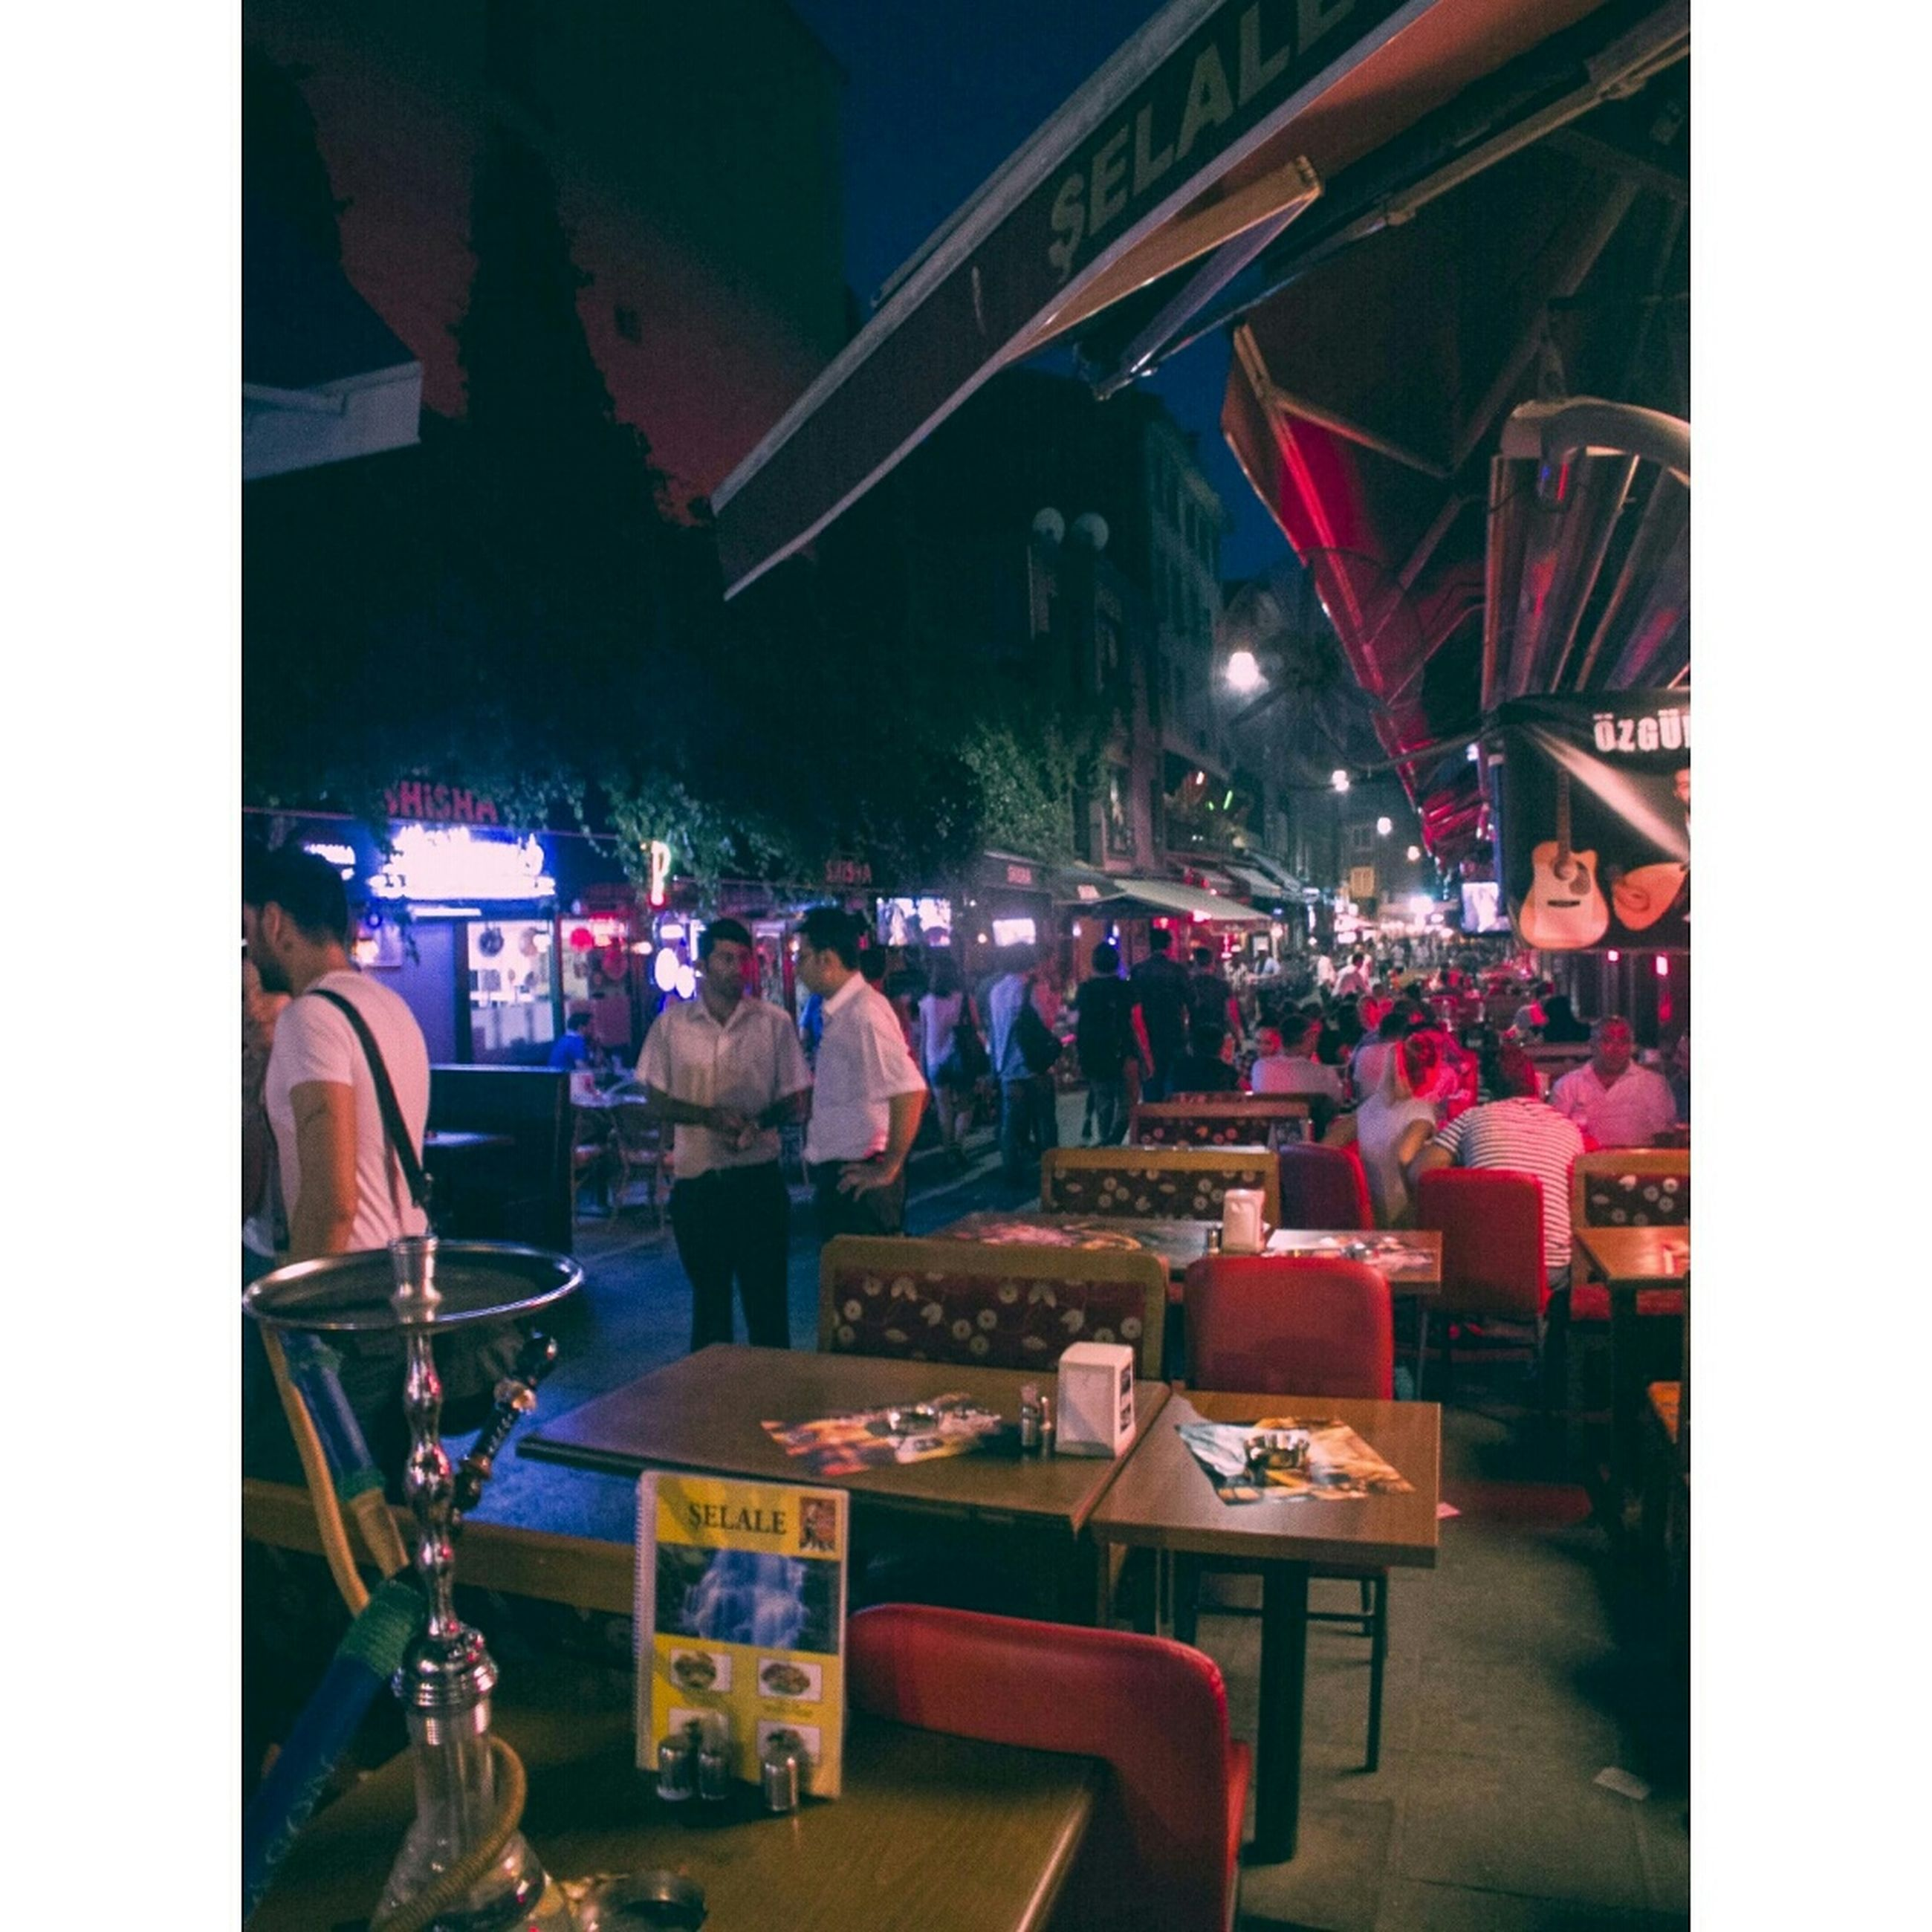 transfer print, auto post production filter, illuminated, night, transportation, chair, incidental people, built structure, mode of transport, indoors, architecture, table, building exterior, restaurant, land vehicle, street, city, person, sidewalk cafe